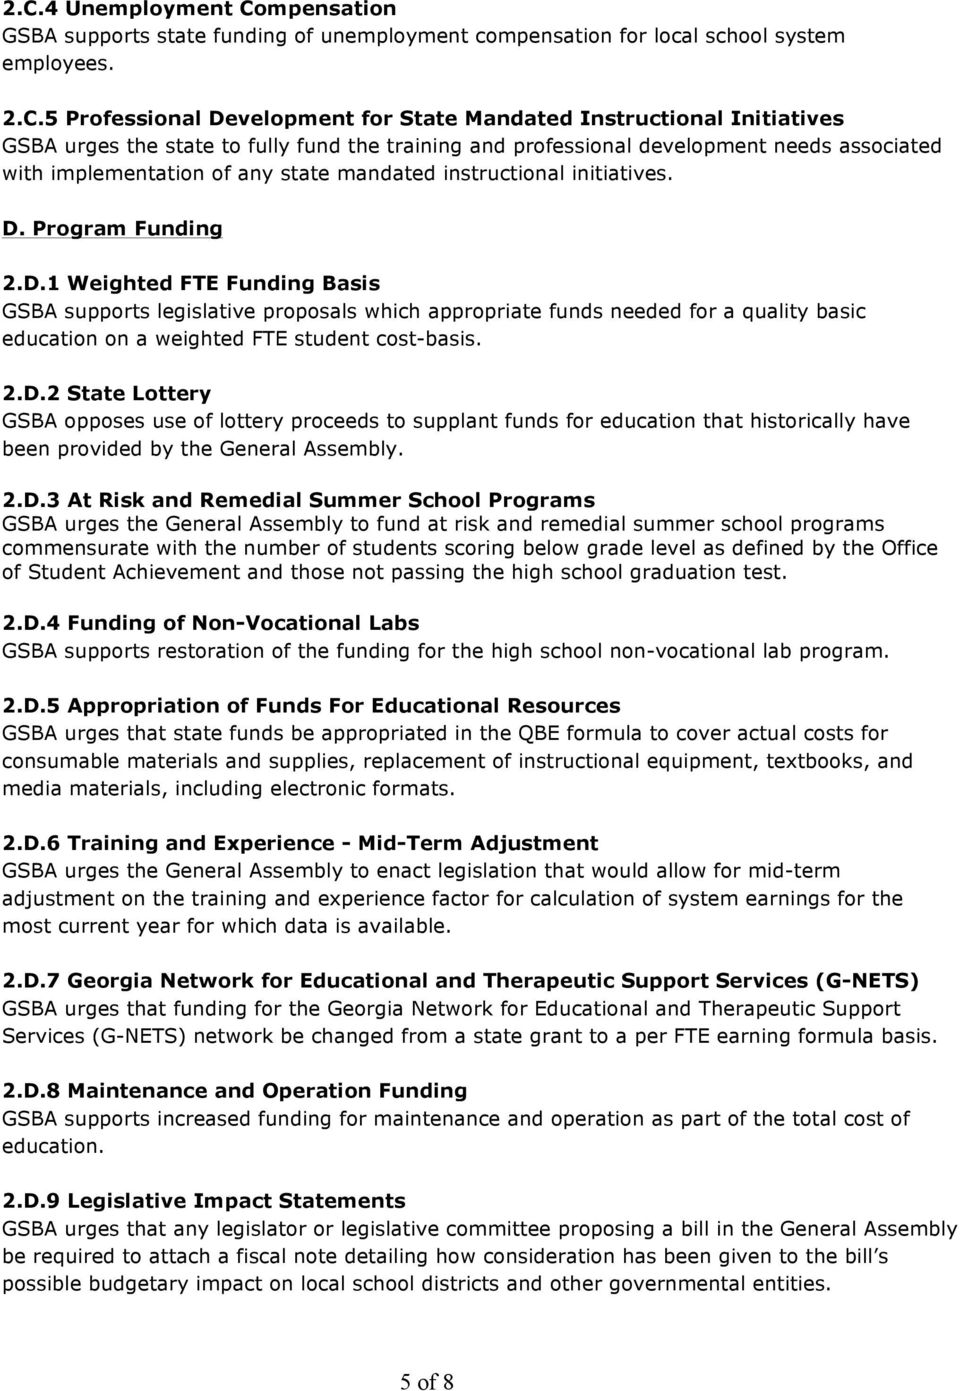 Program Funding 2.D.1 Weighted FTE Funding Basis GSBA supports legislative proposals which appropriate funds needed for a quality basic education on a weighted FTE student cost-basis. 2.D.2 State Lottery GSBA opposes use of lottery proceeds to supplant funds for education that historically have been provided by the General Assembly.